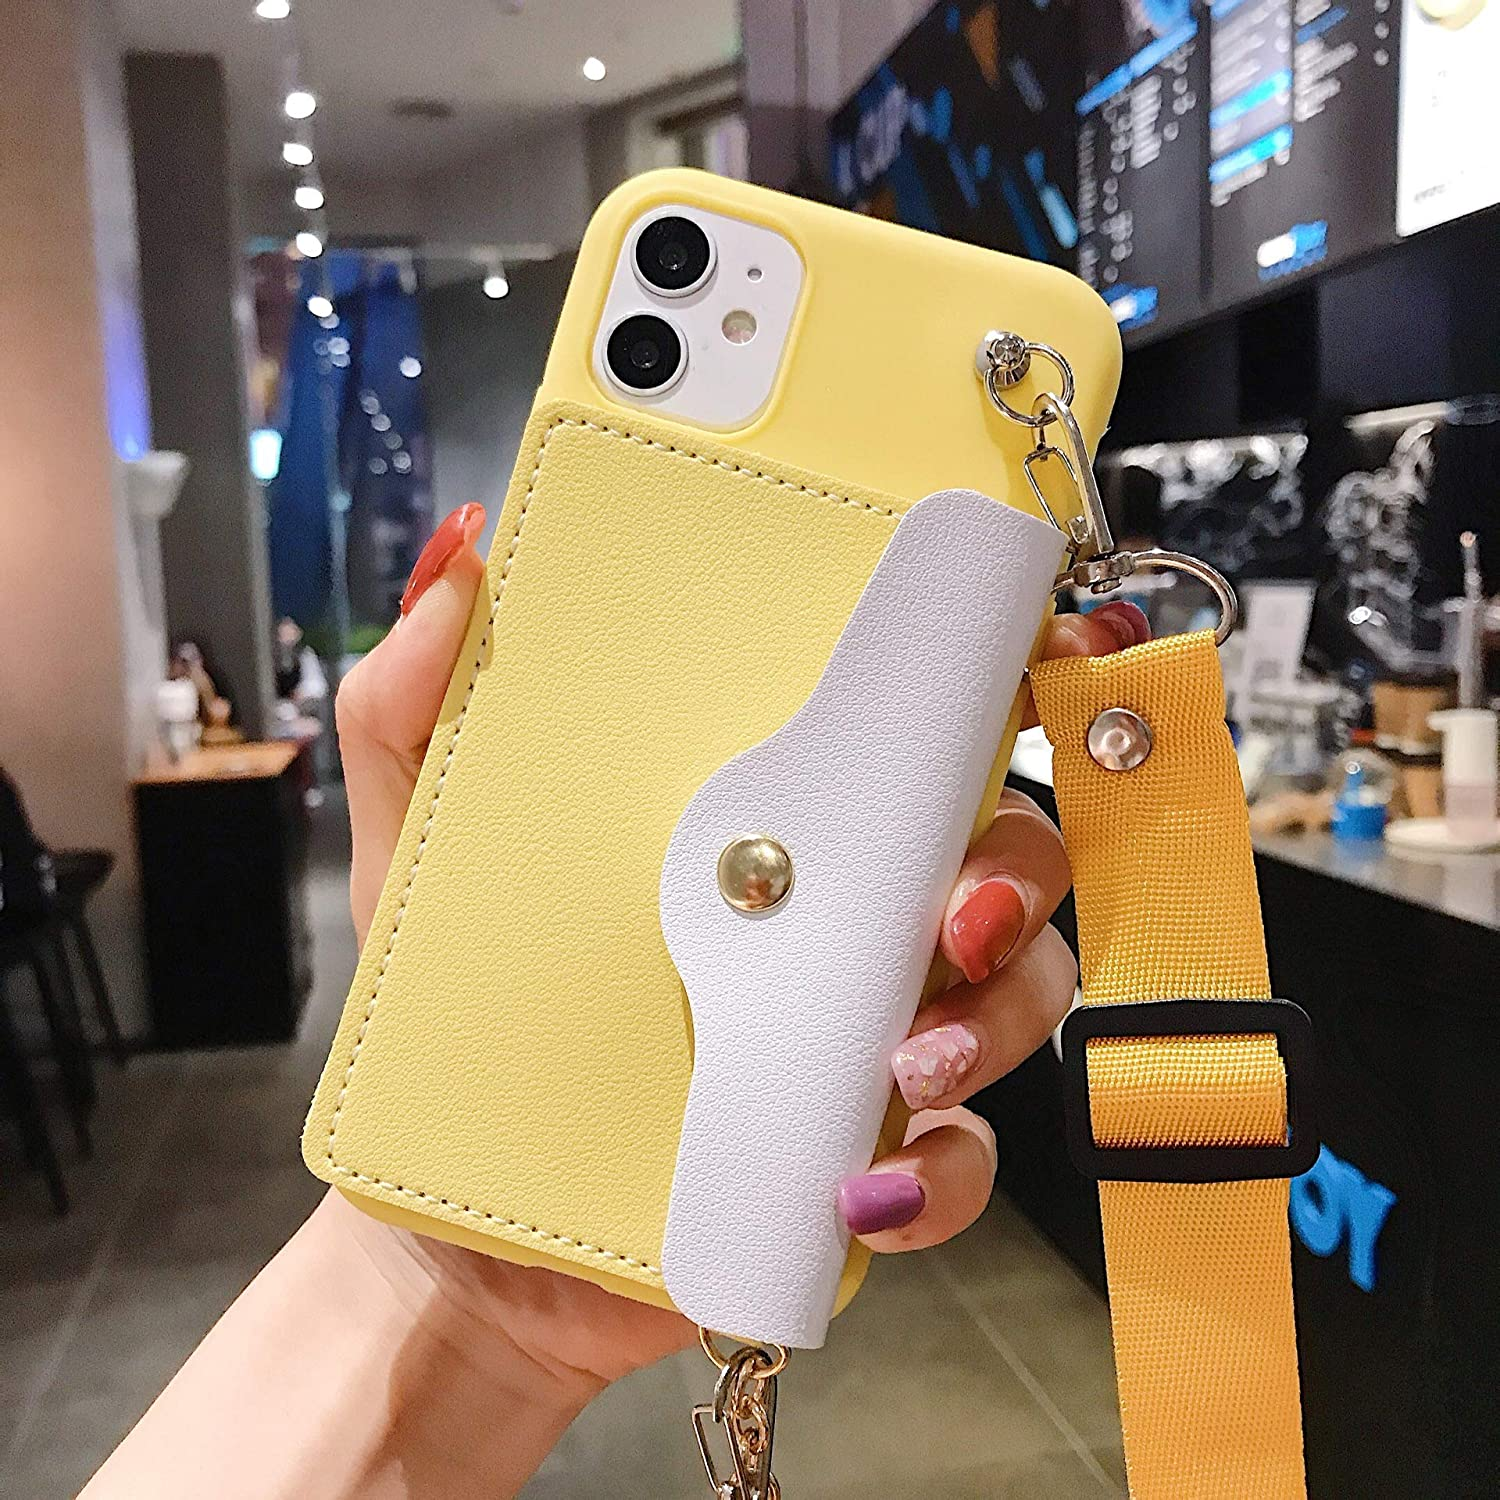 ISYSUII Crossbody Case for iPhone Xs Max Wallet Case with Card Holder Slots Adjustable Lanyard Strap Soft Leather Purse Handbag Magnetic Clasp Protective Case for Girl Women,Yellow